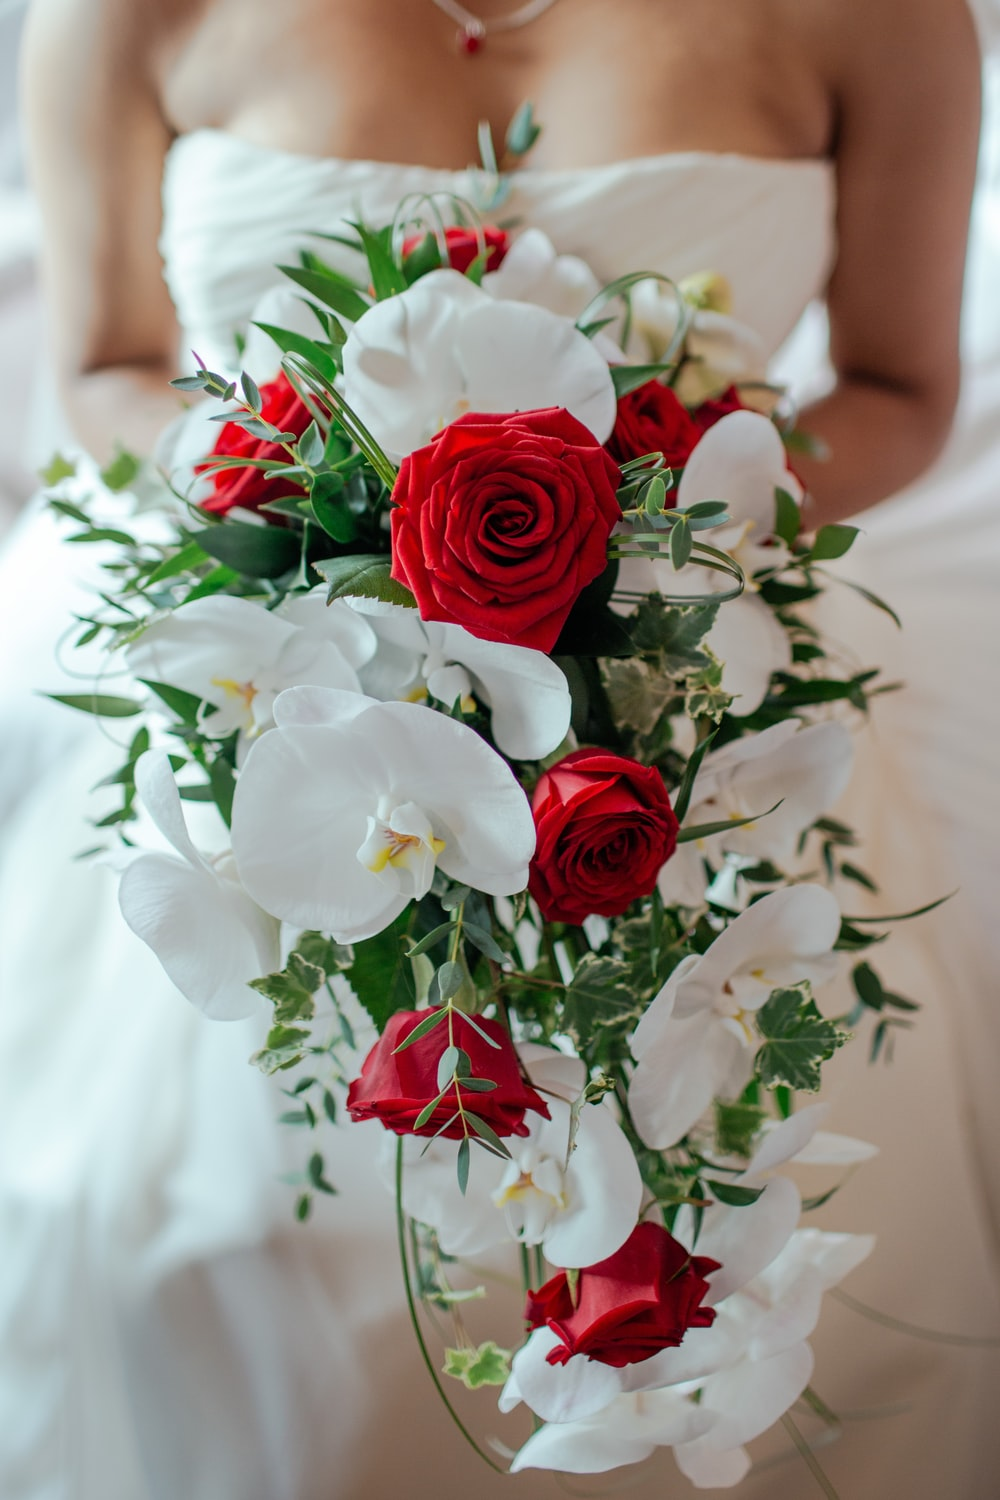 Wedding Bouquet Pictures | Download Free Images on Unsplash